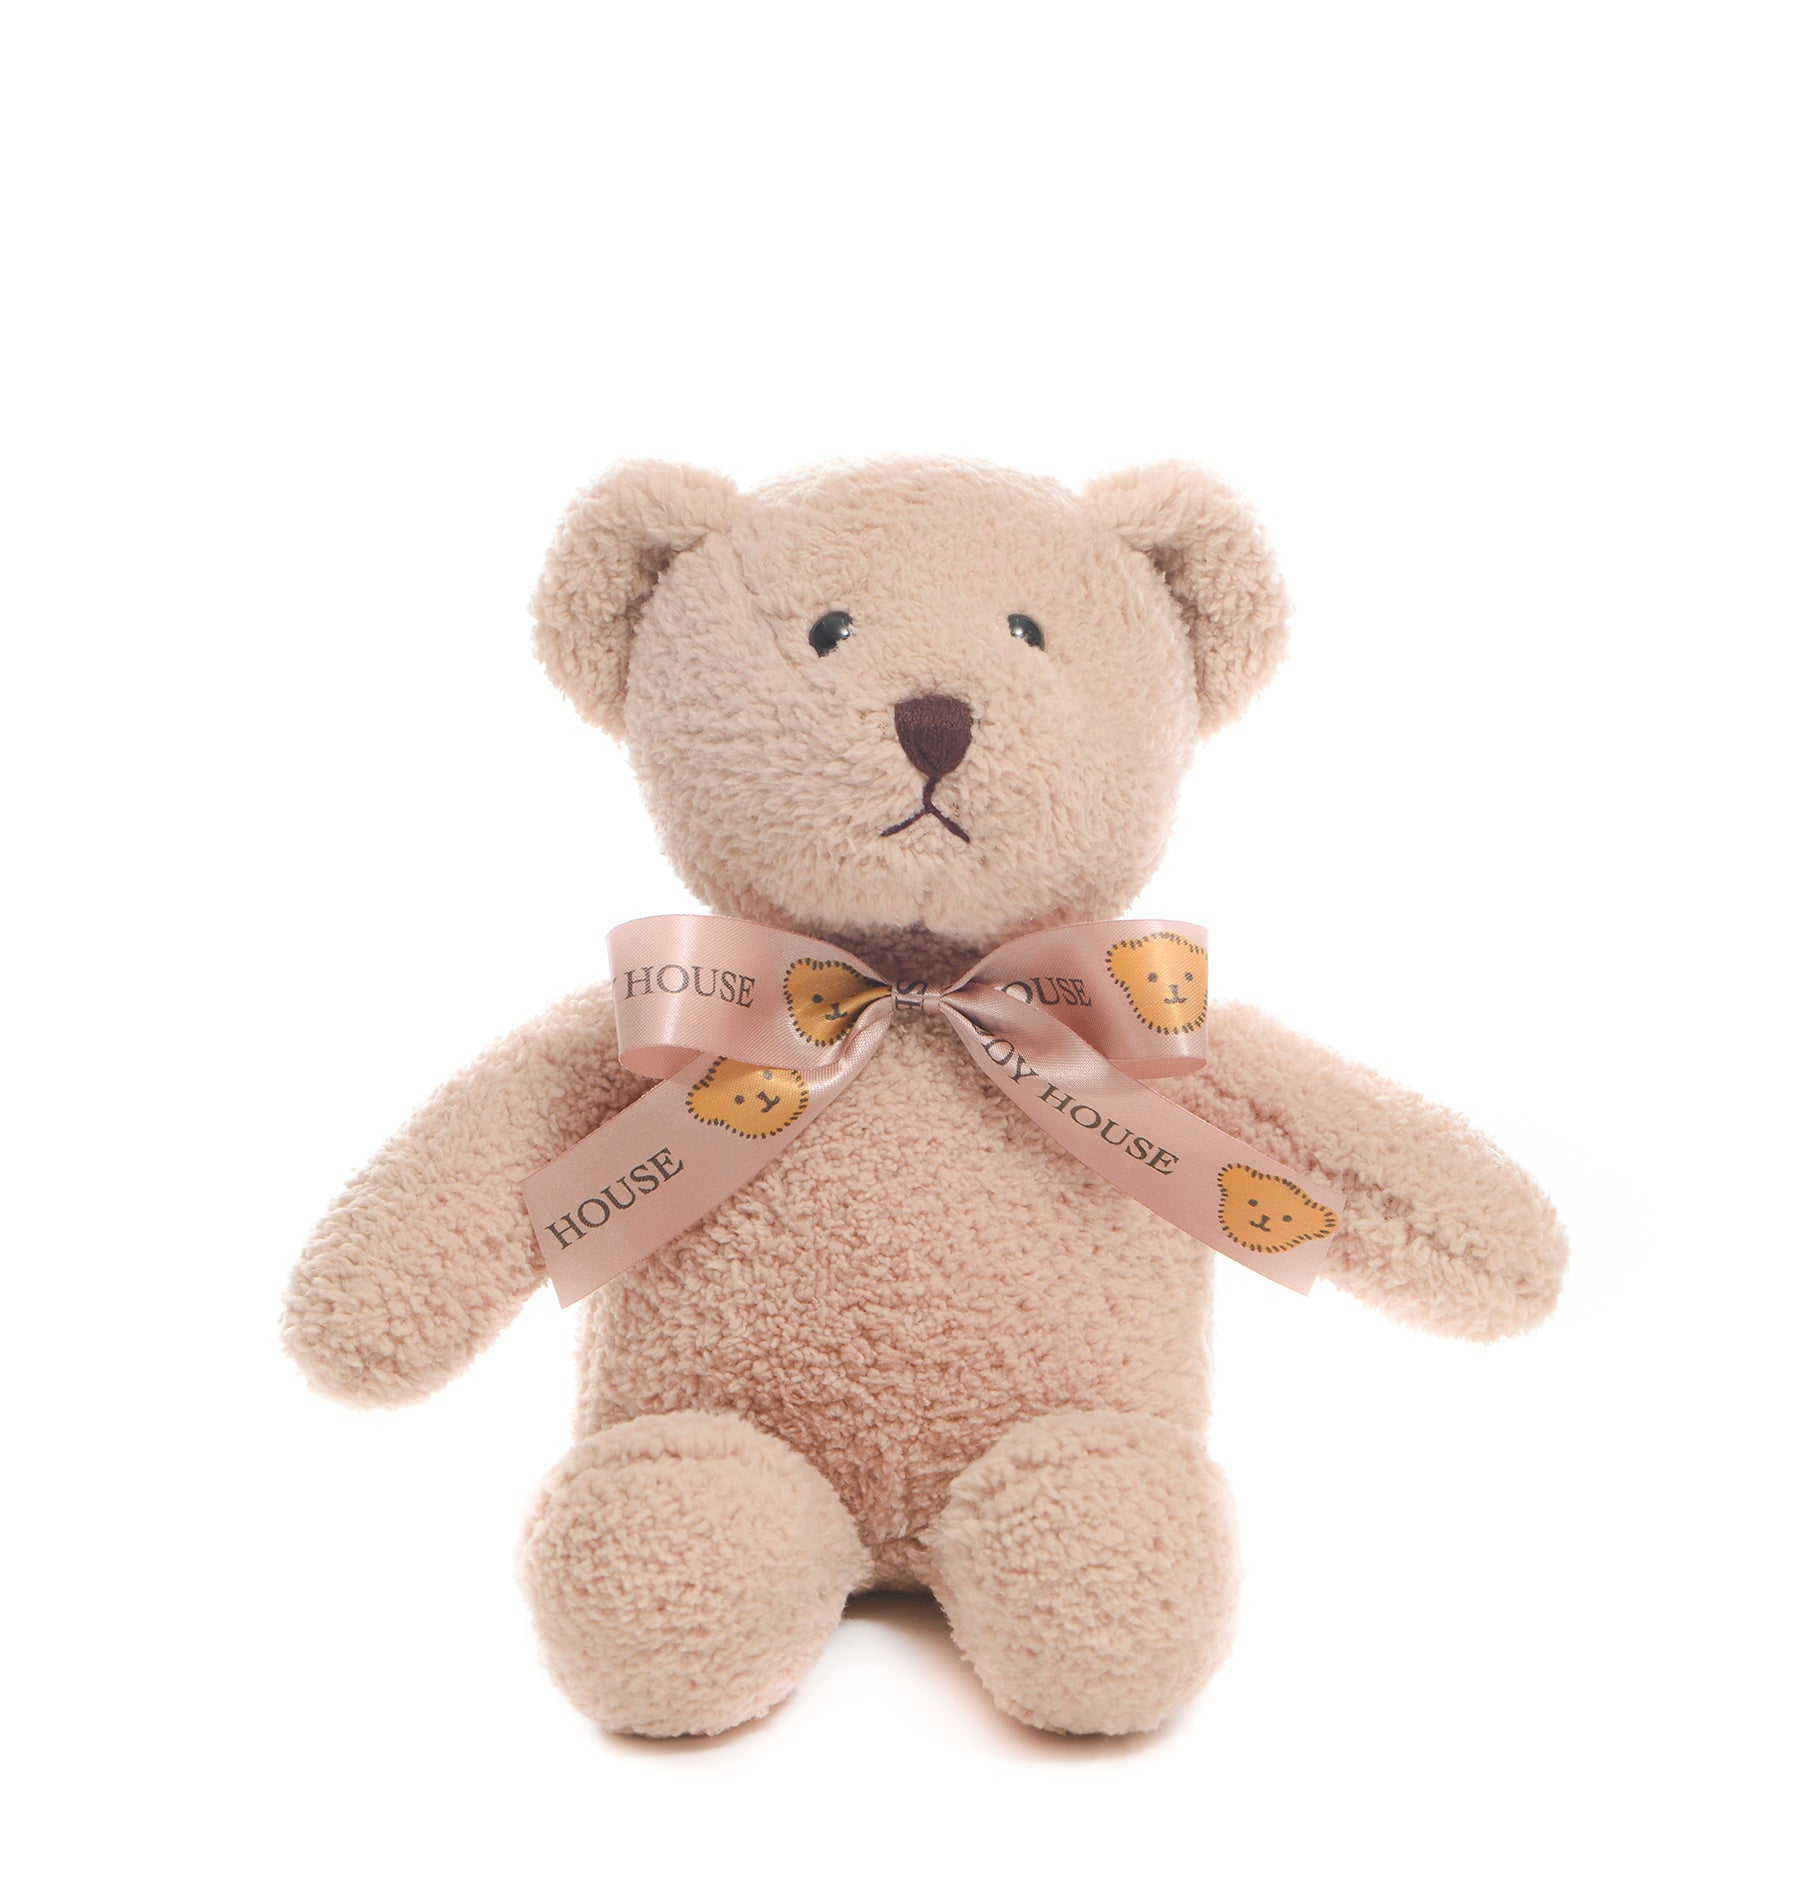 TEDDY HOUSE BONEKA TEDDY BEAR PP BEAR 12 INCH